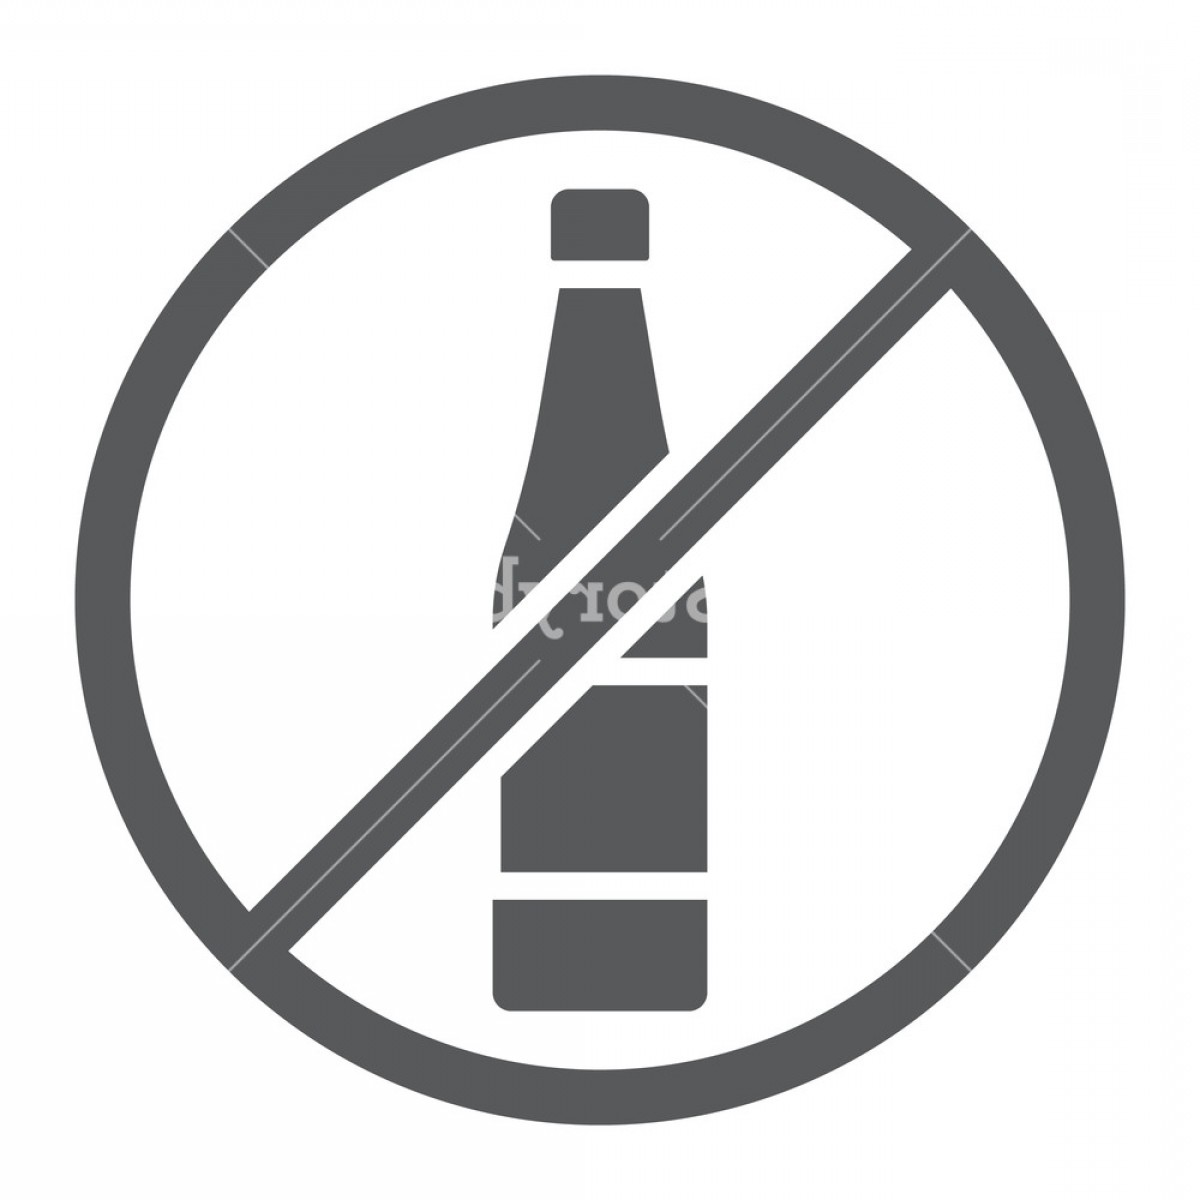 Vector No Alcohol: No Alcohol Glyph Icon Drink And Warning Alcohol Forbidden Sign Vector Graphics A Solid Pattern On A White Background Hsmqdjtjtyglo